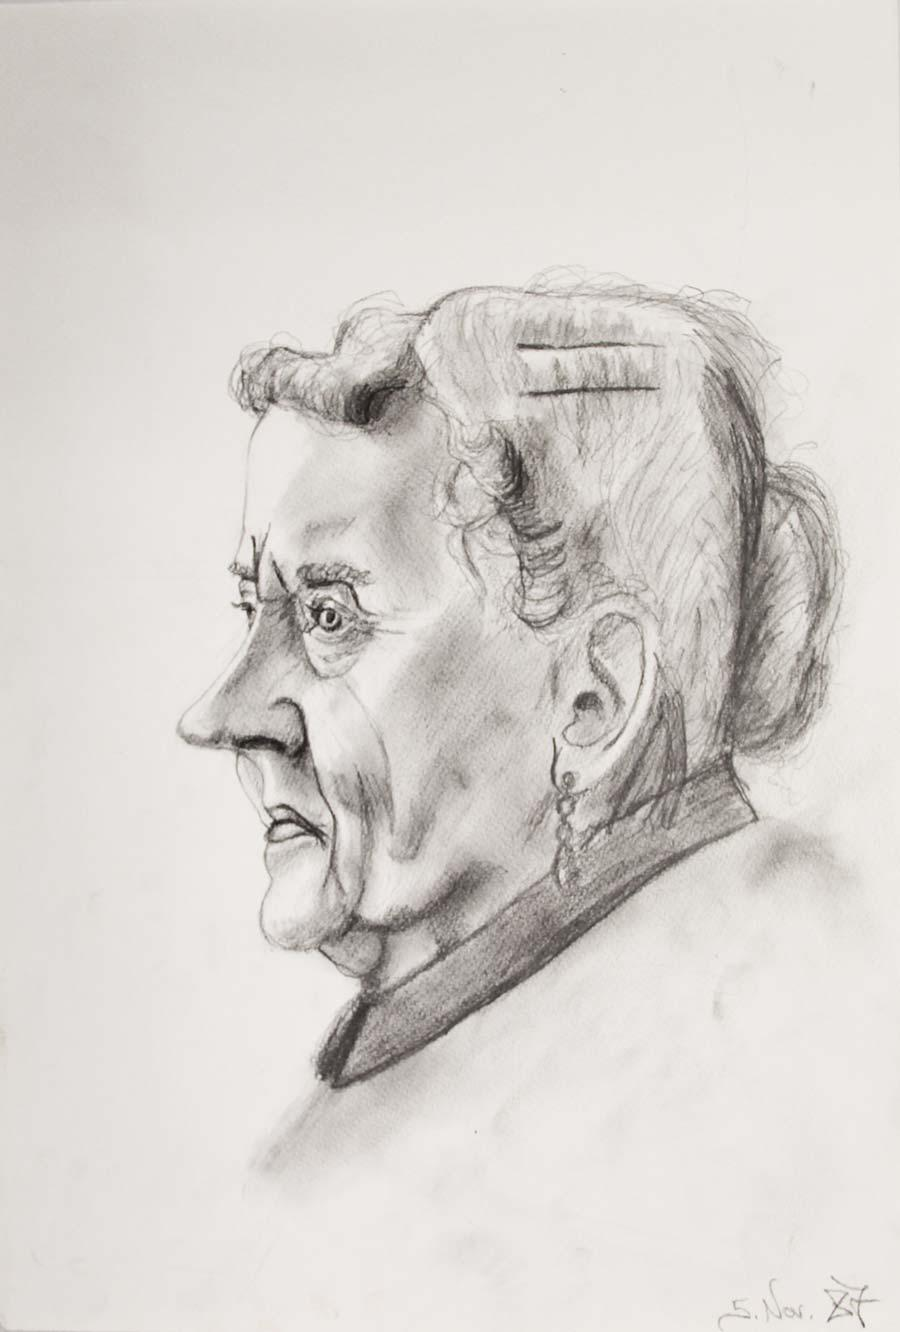 """5.Nov. 87"", 1987, 42x29,5cm, pencil on paper"